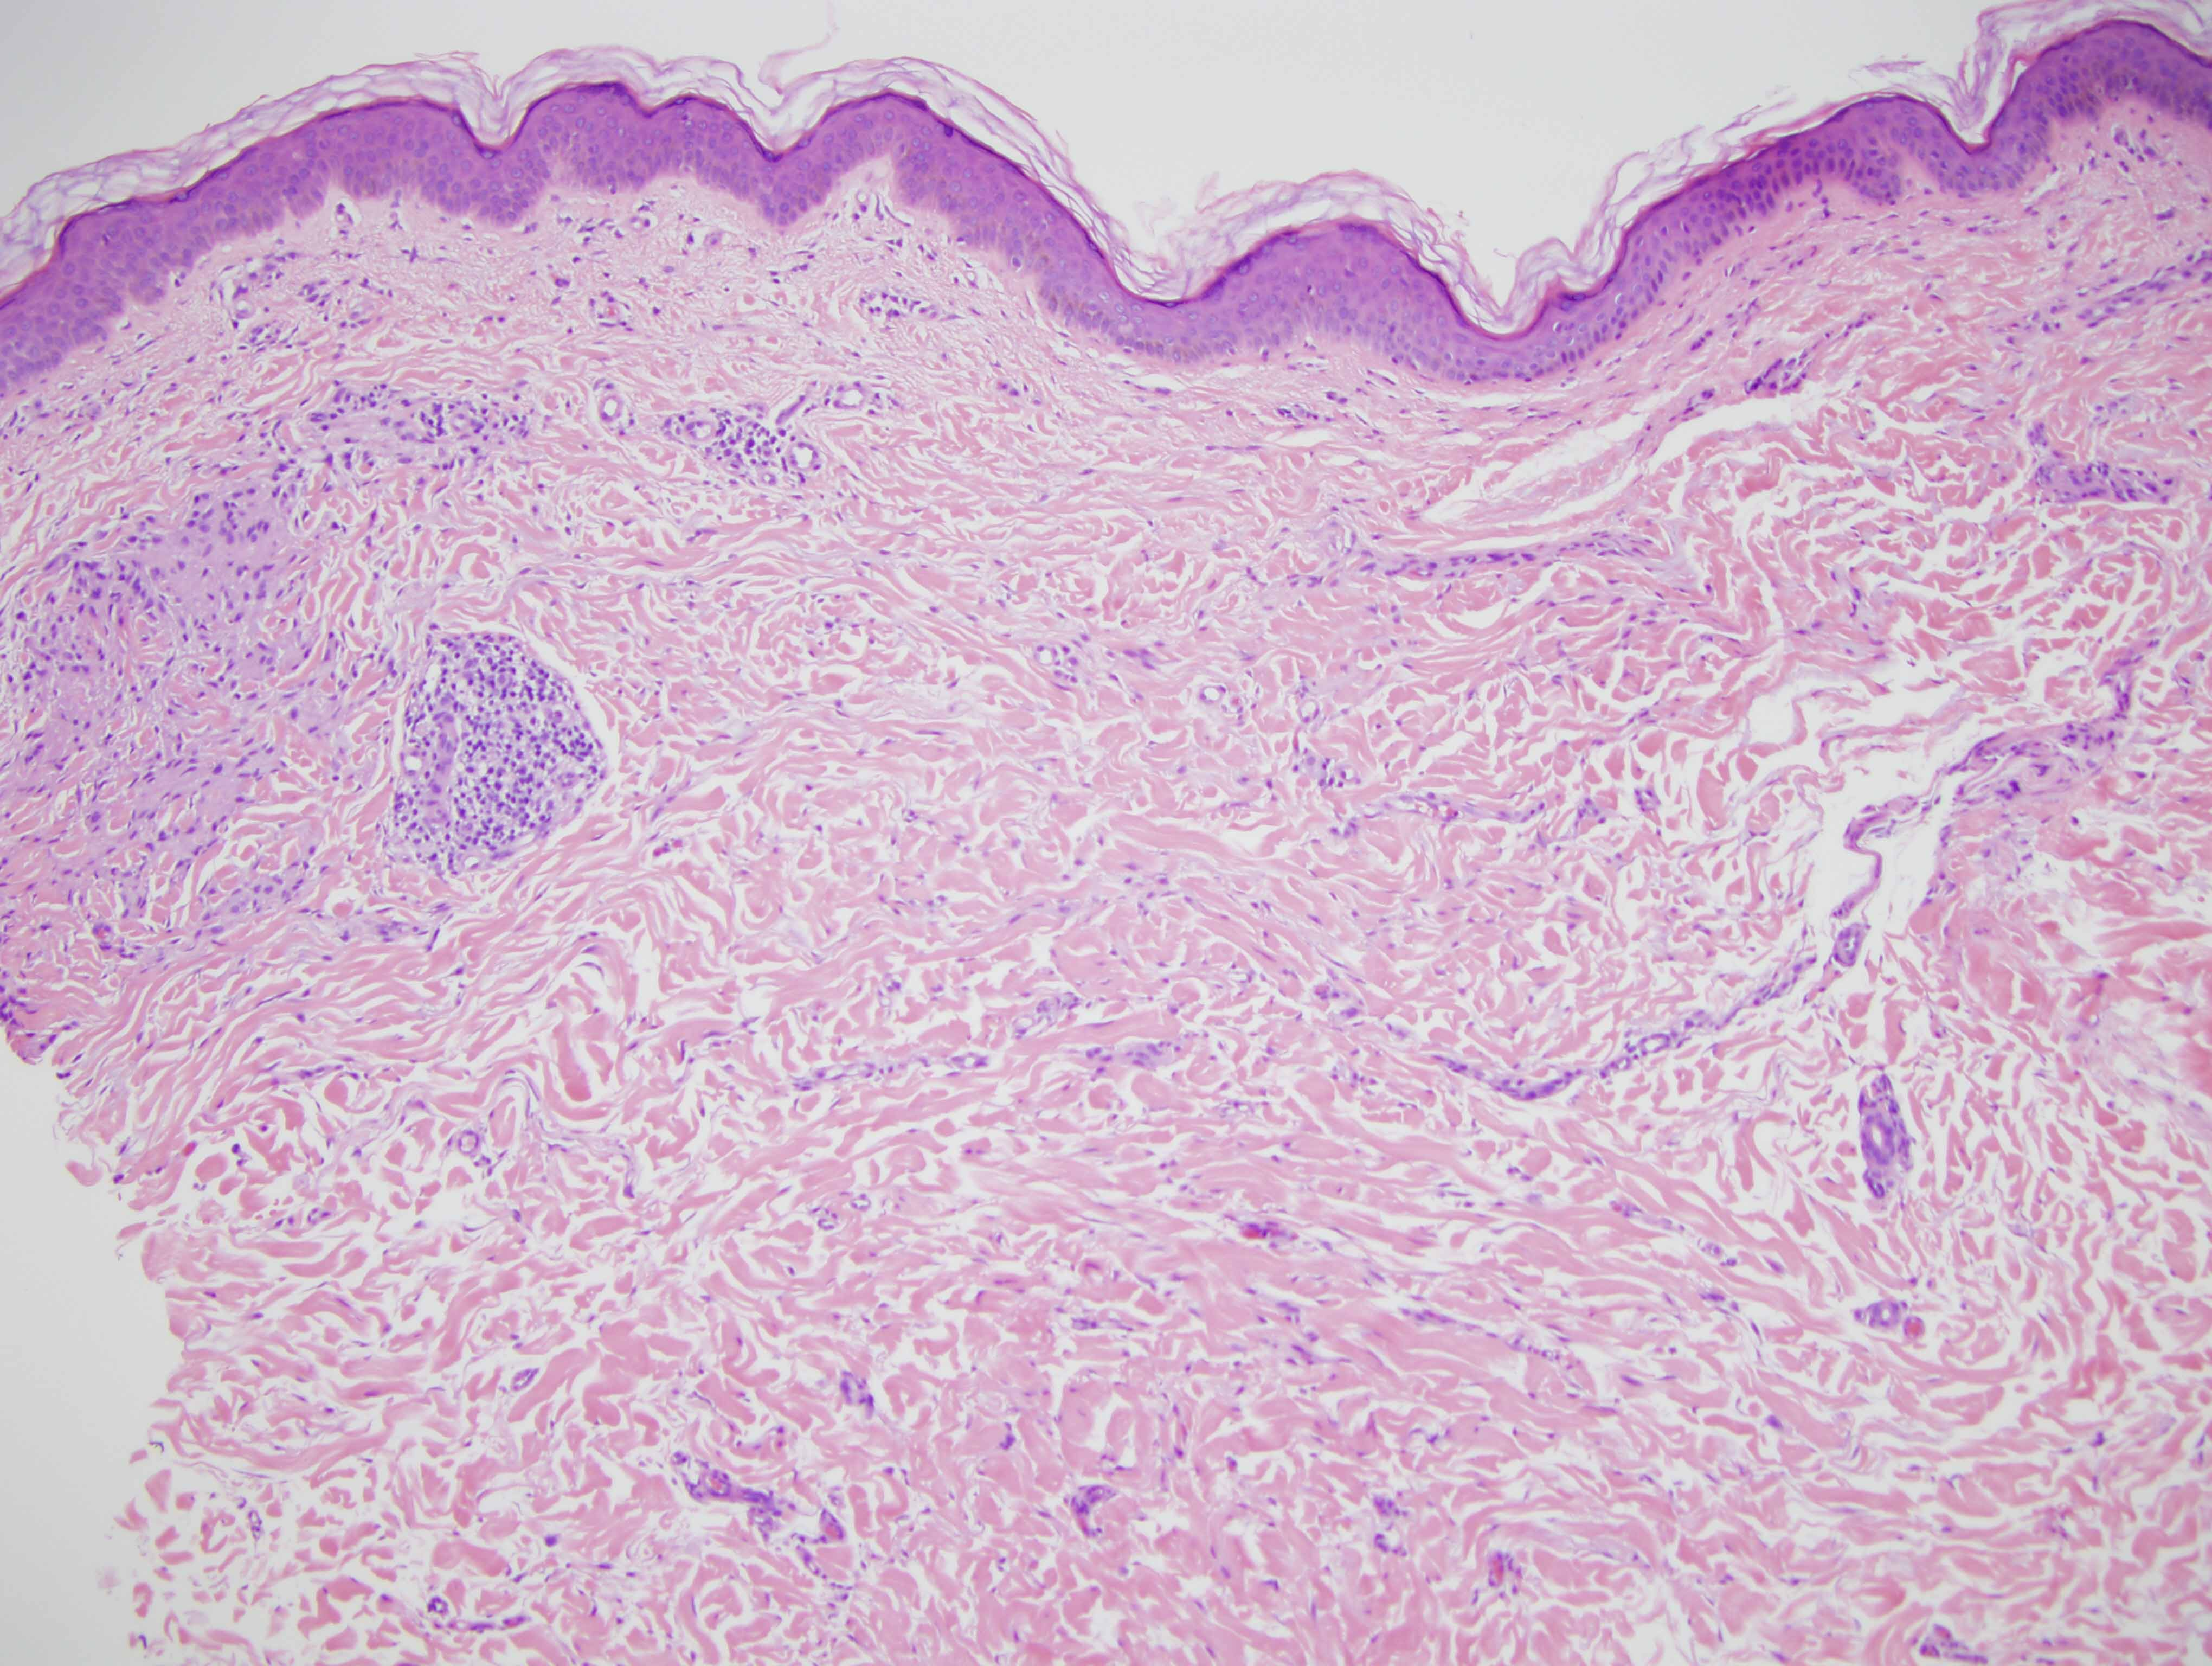 Slide 1: The biopsy shows discontiguous superficial and deep foci of interstitial histiocytic infiltration.